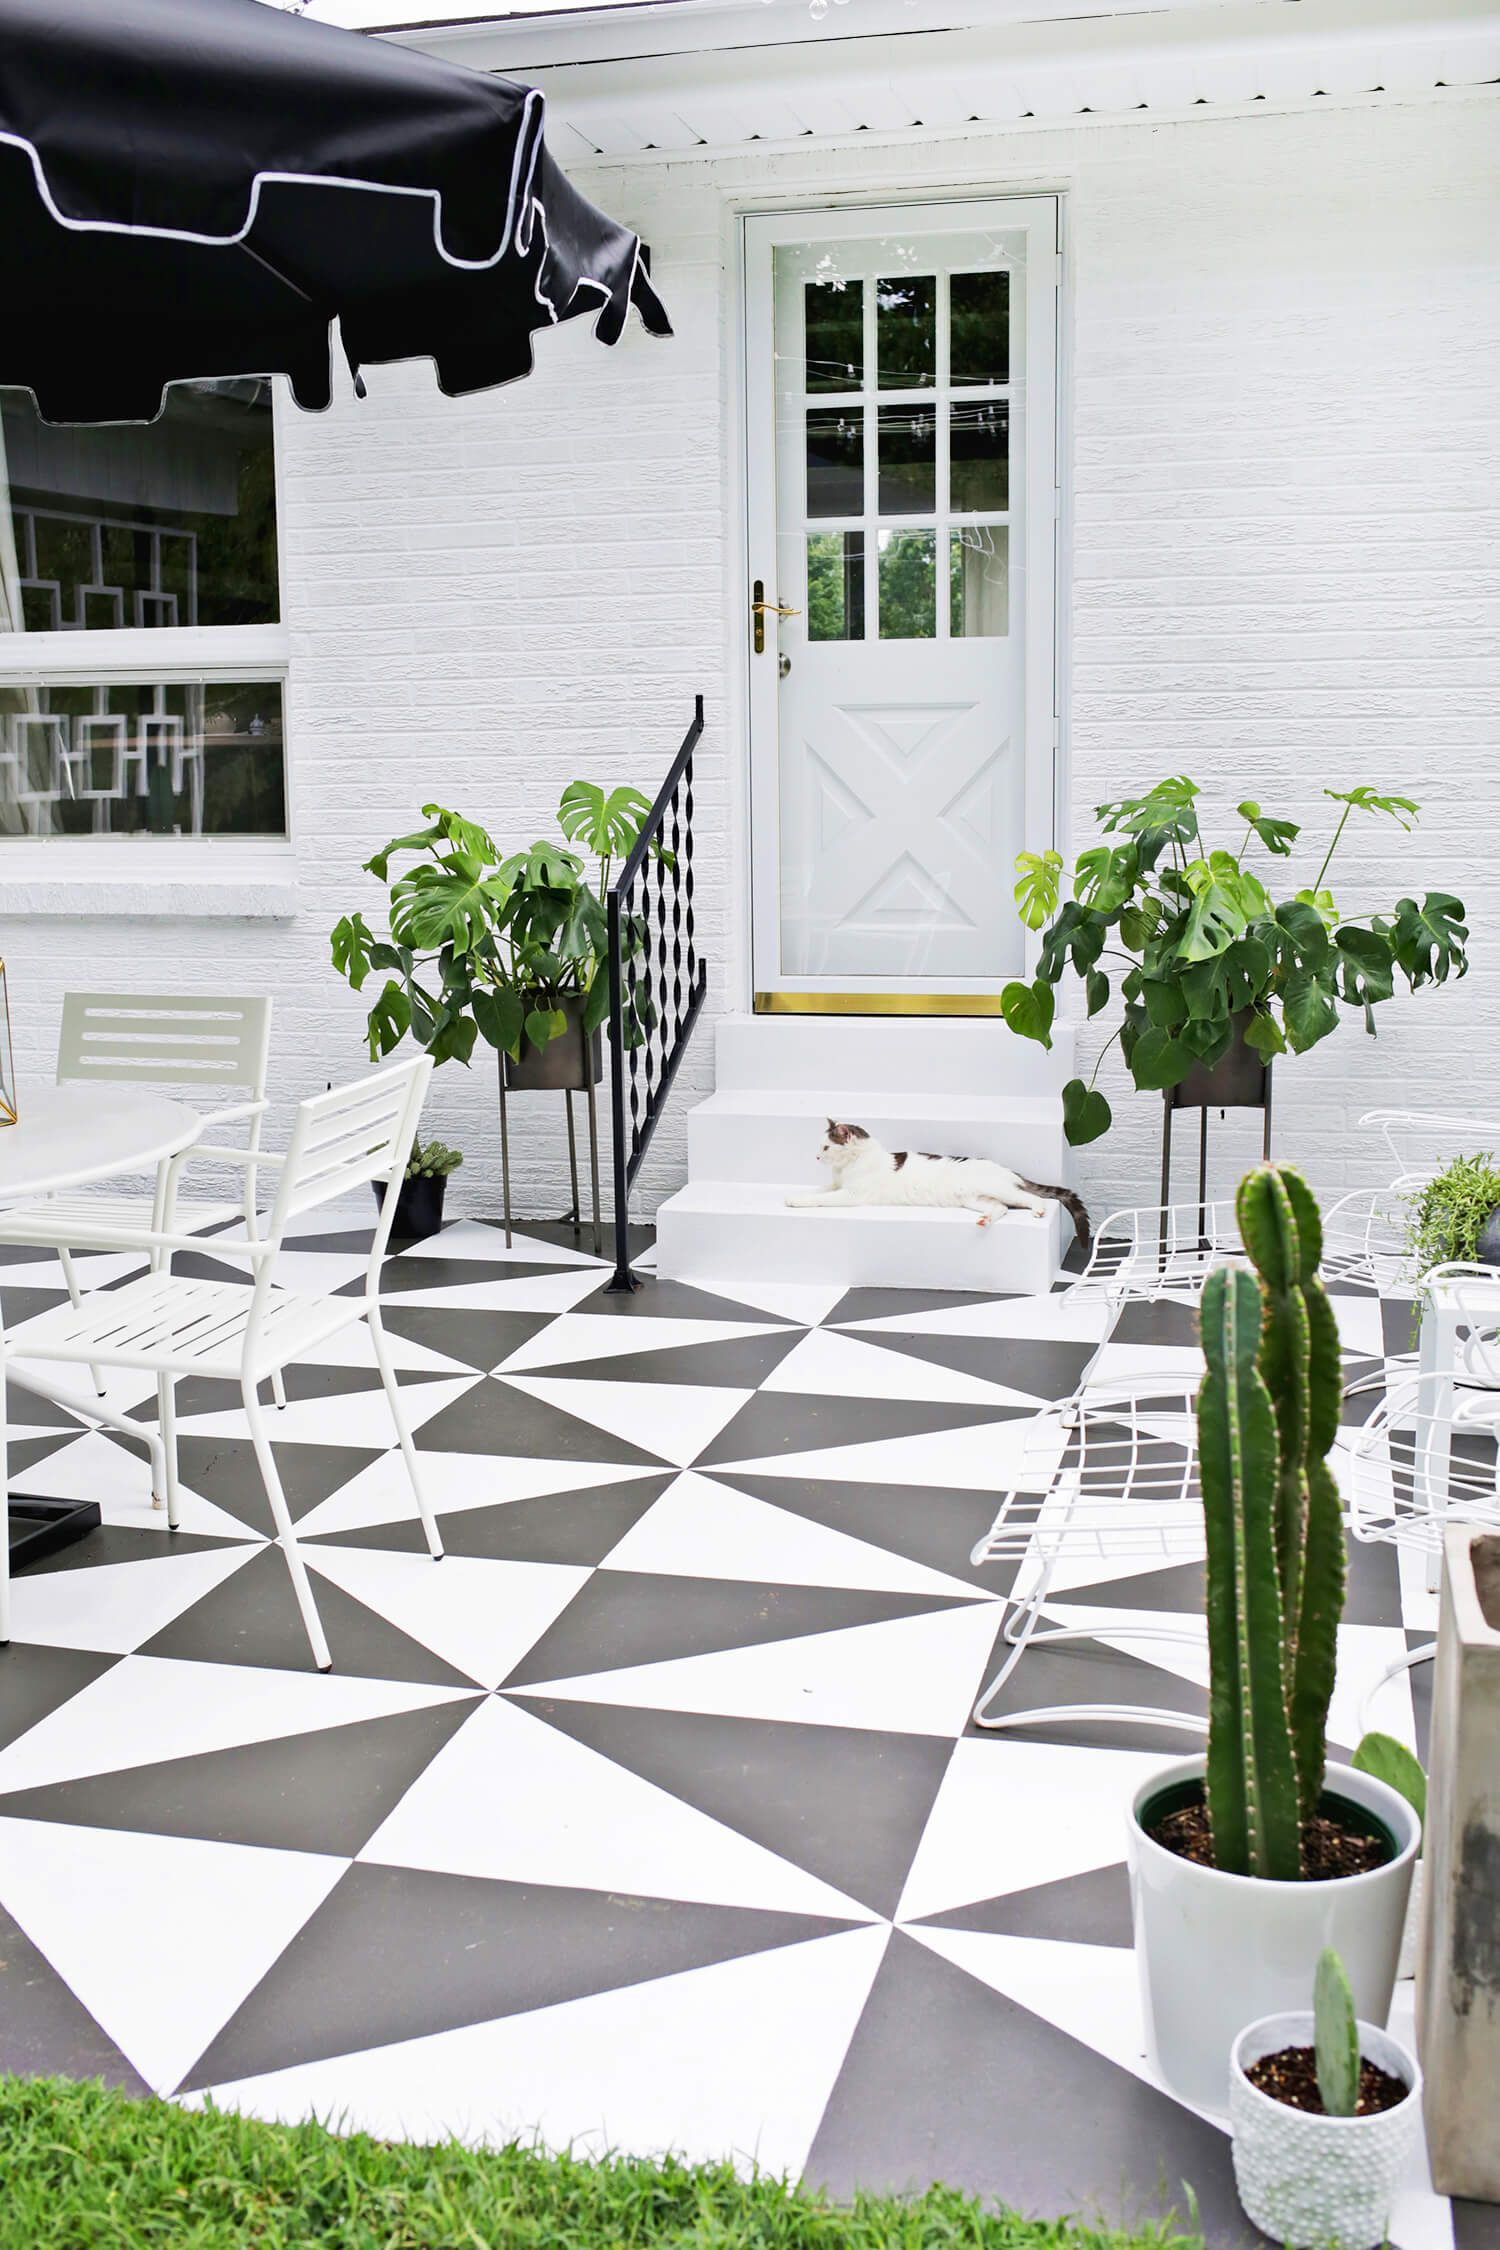 Small Outdoor Decor Ideas - How to Decorate Your Small Patio